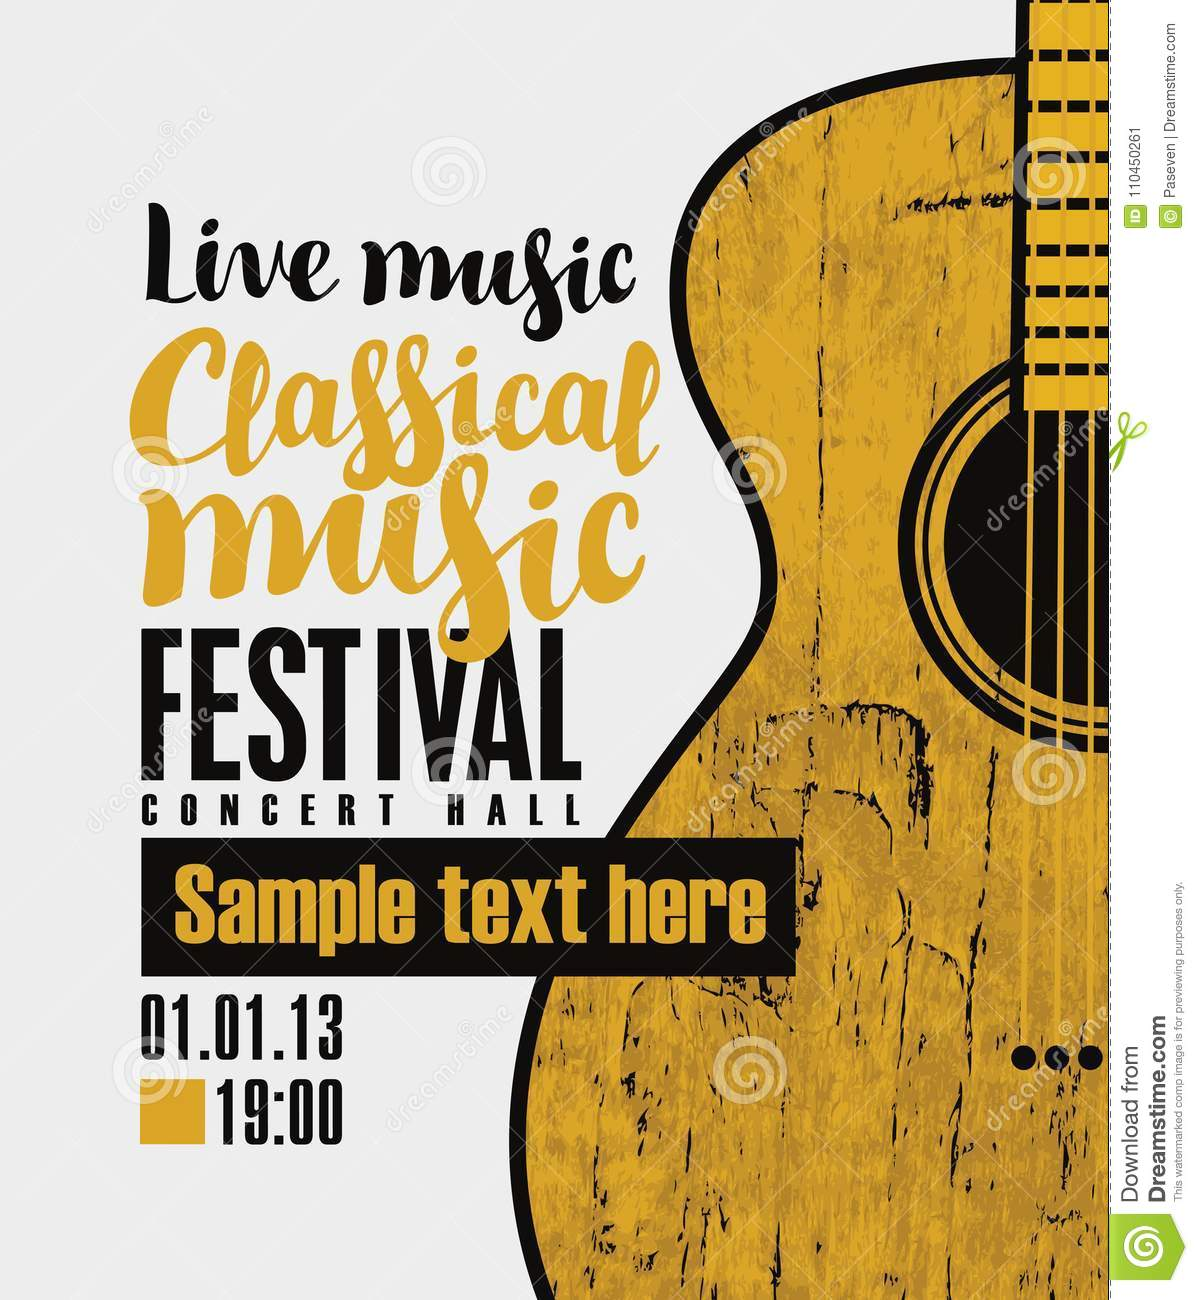 Banner for festival classical music with a guitar